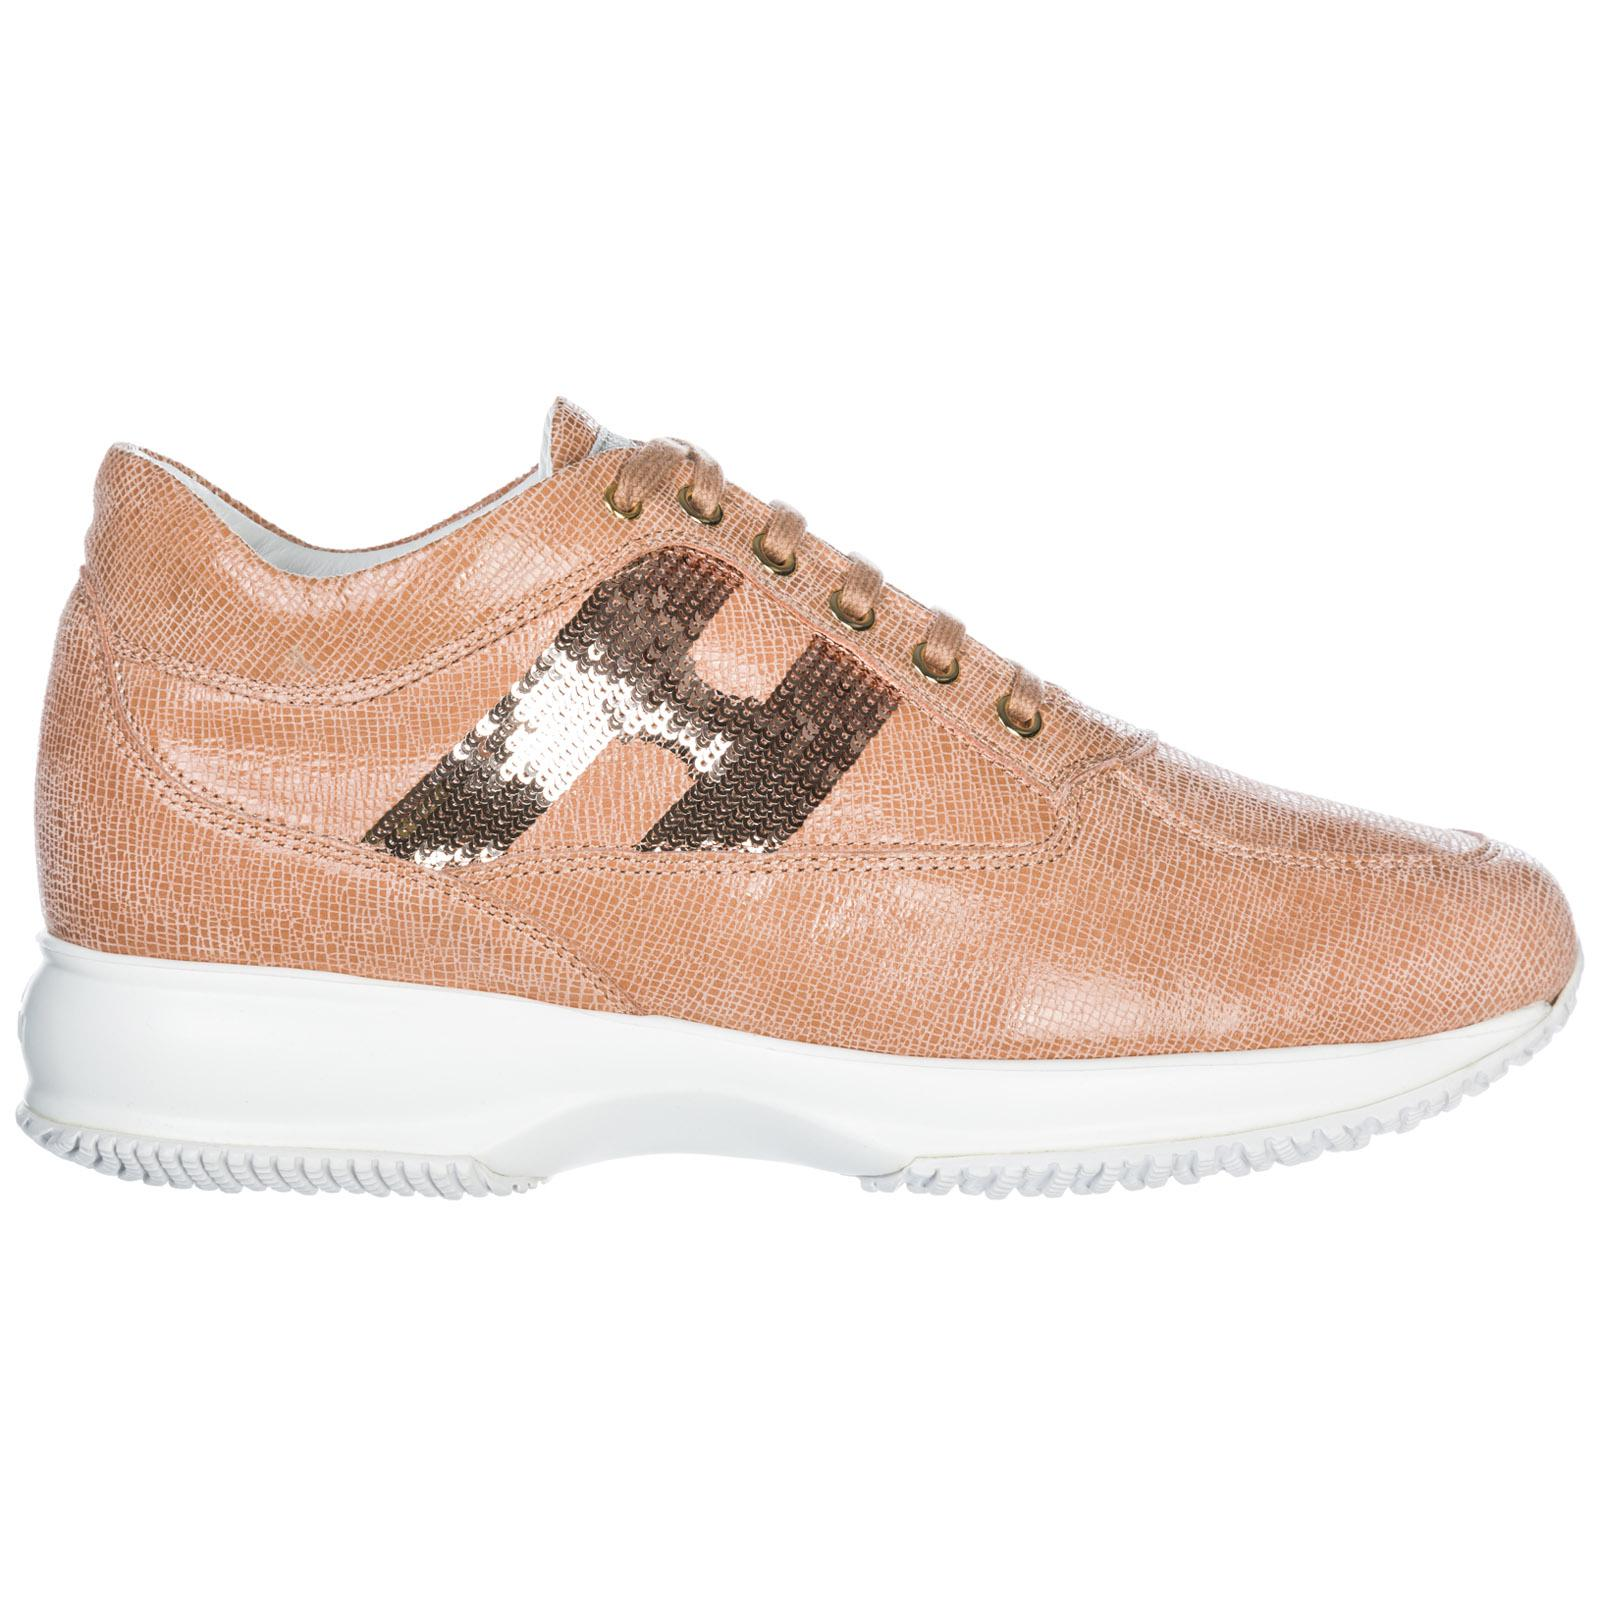 Hogan Women's Shoes Leather Trainers Sneakers Interactive In Pink